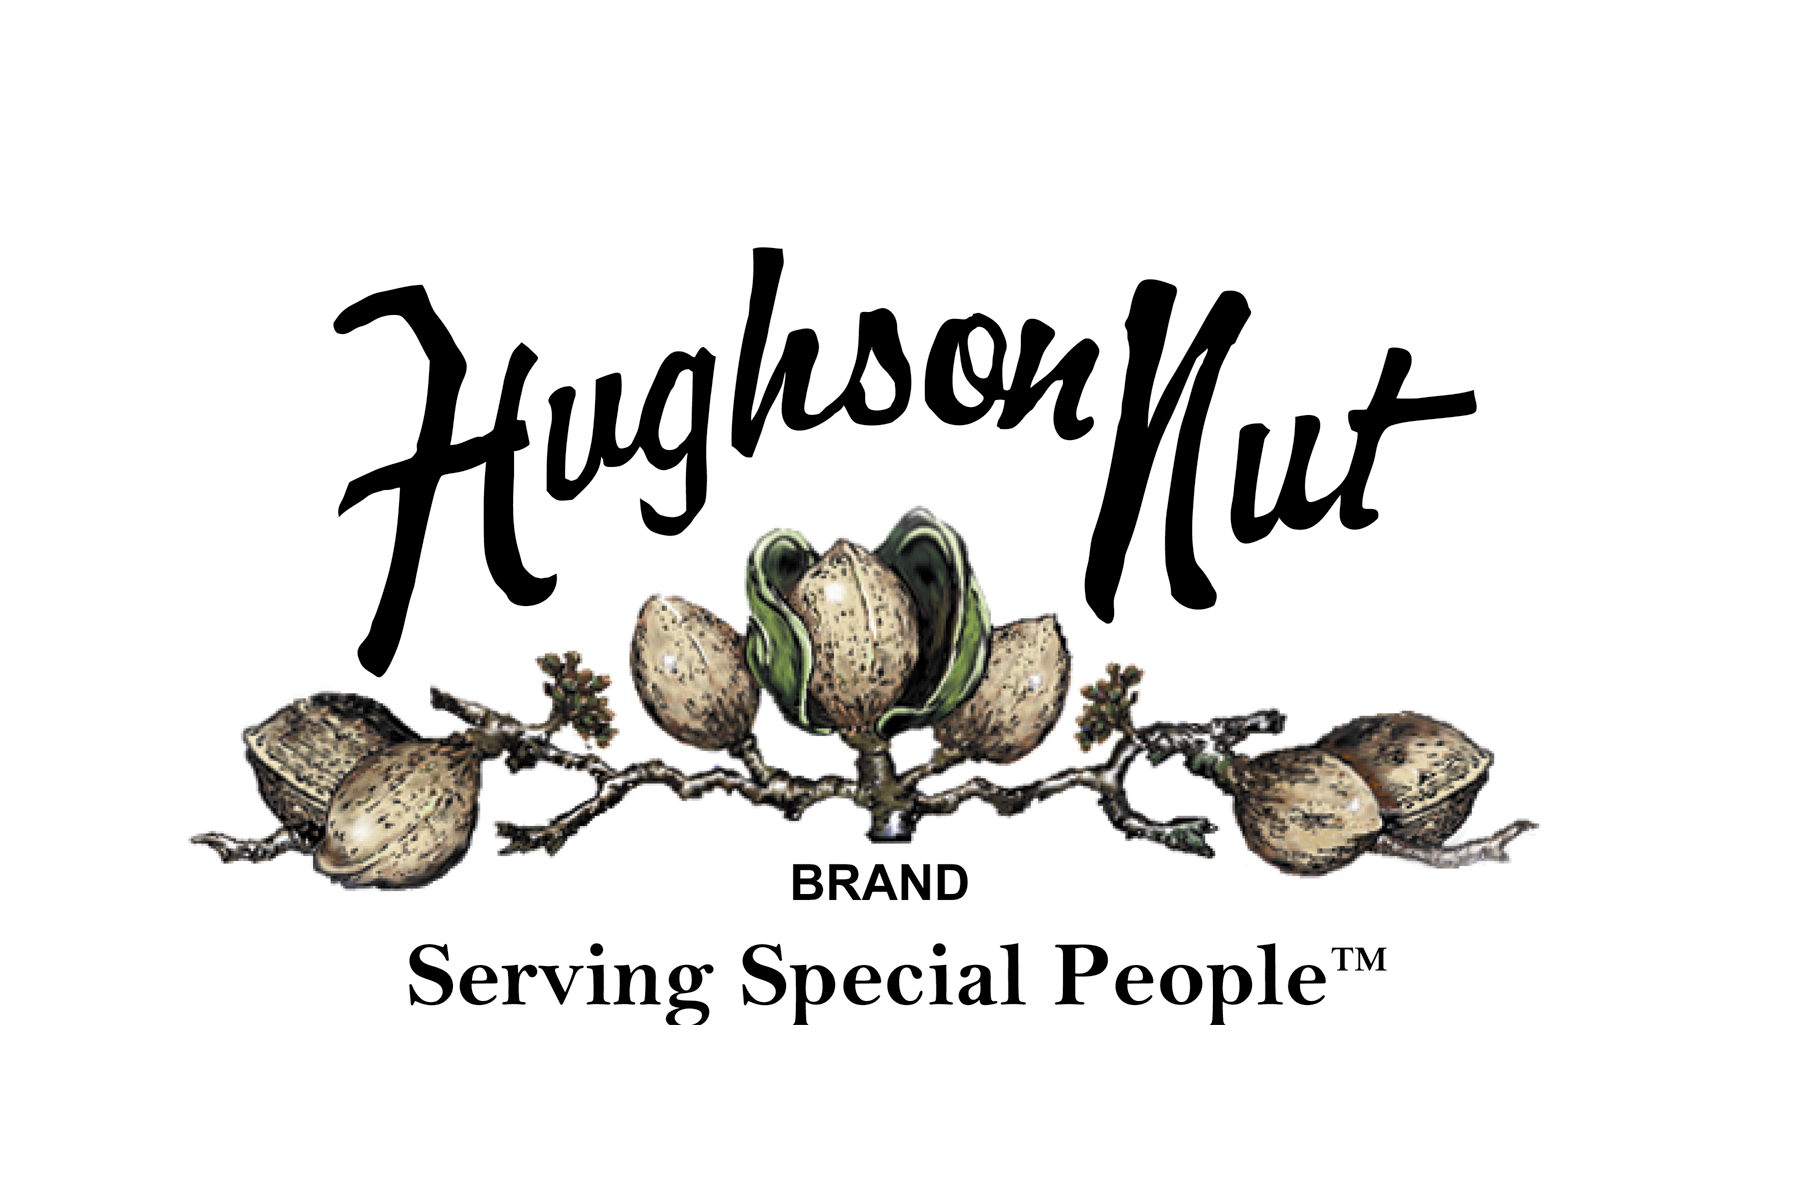 hudson nut corporate fleece blanket